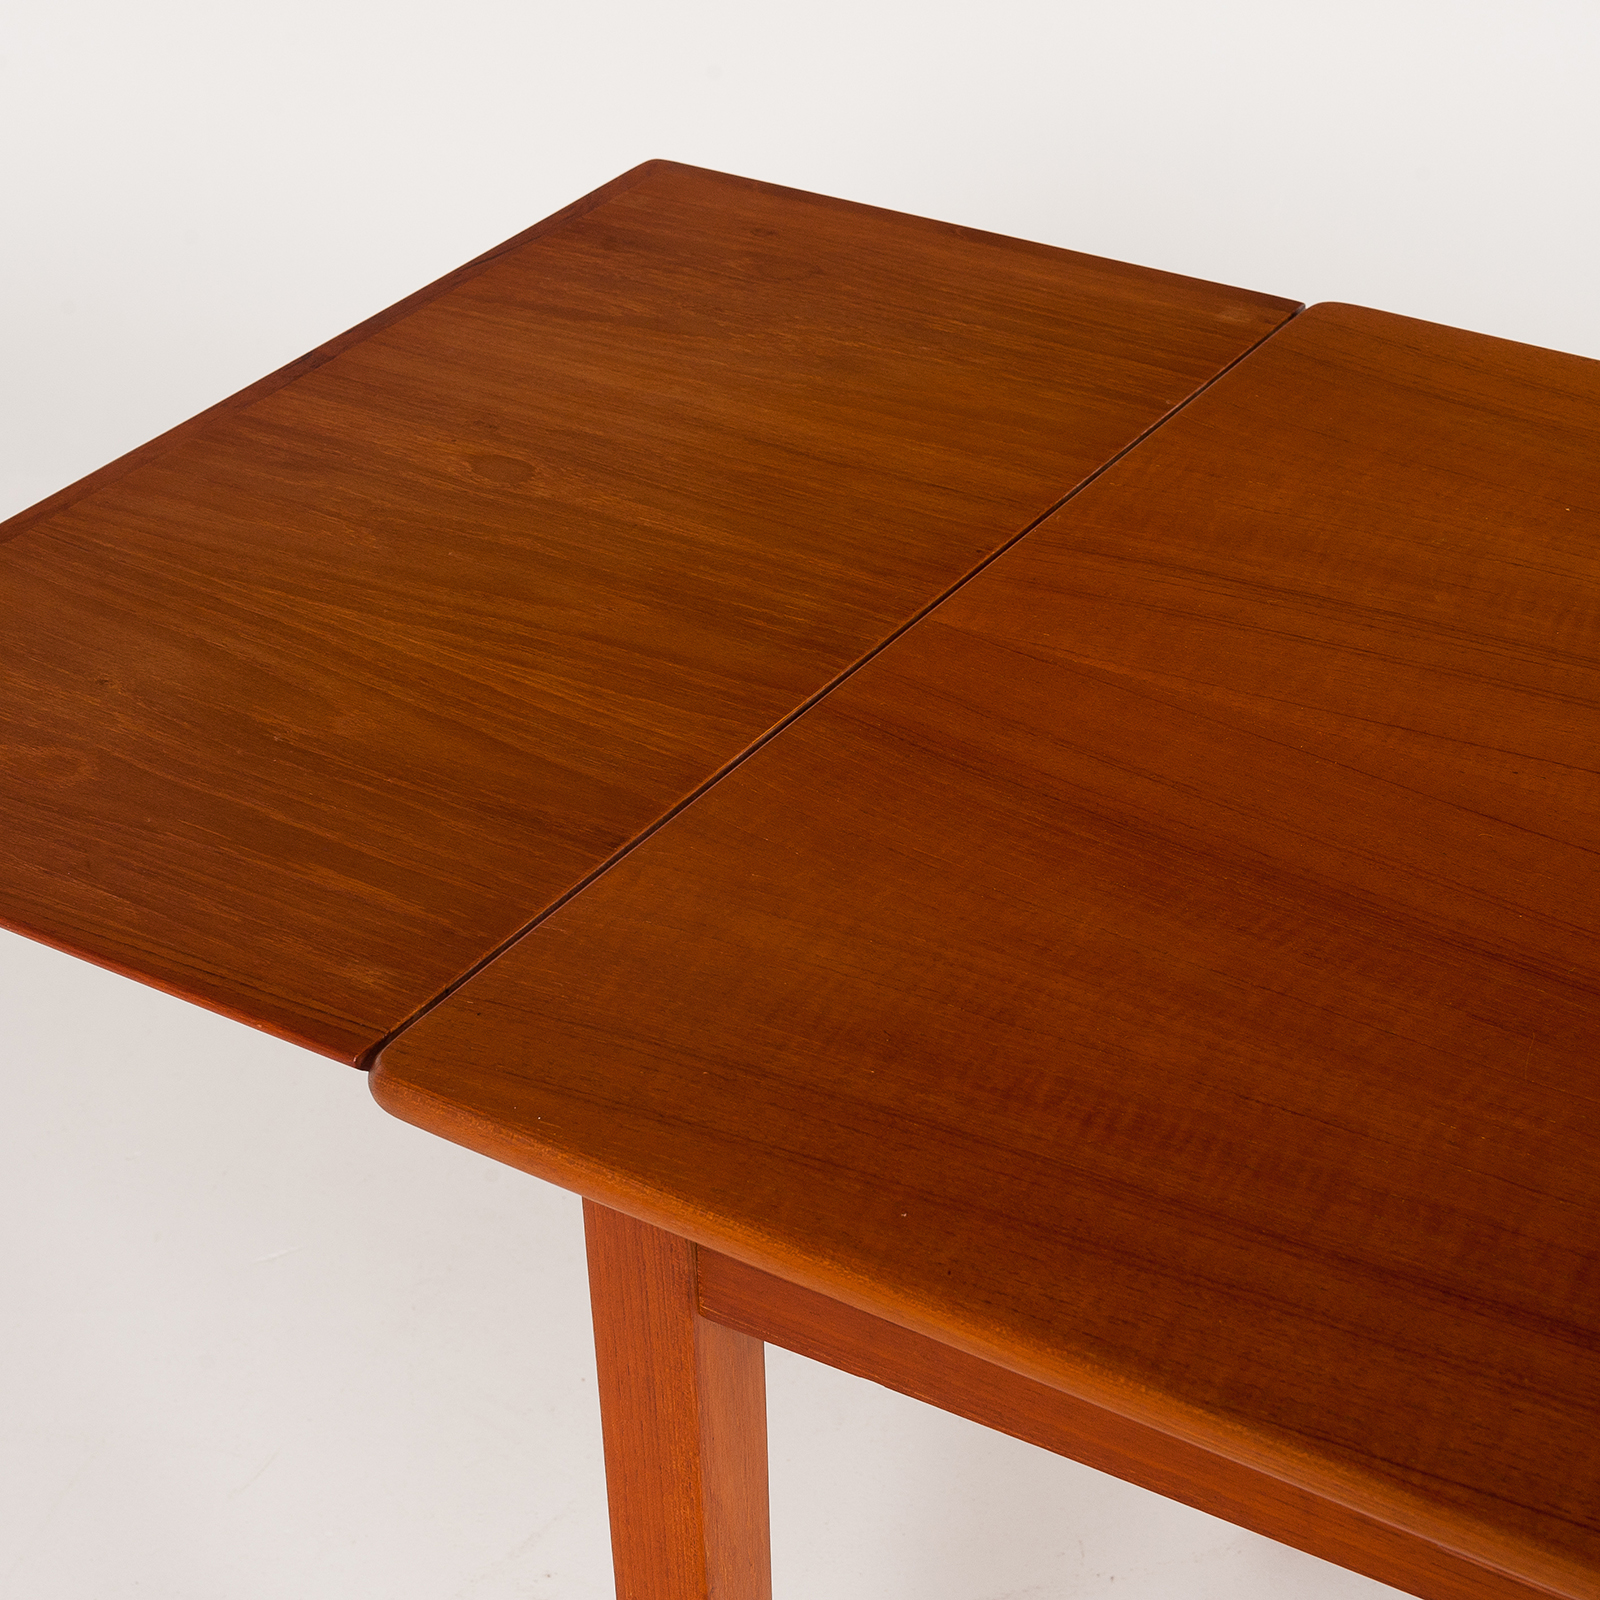 Rectangular Extension Dining Table In Teak With Square Legs, 1960s, Denmark6011